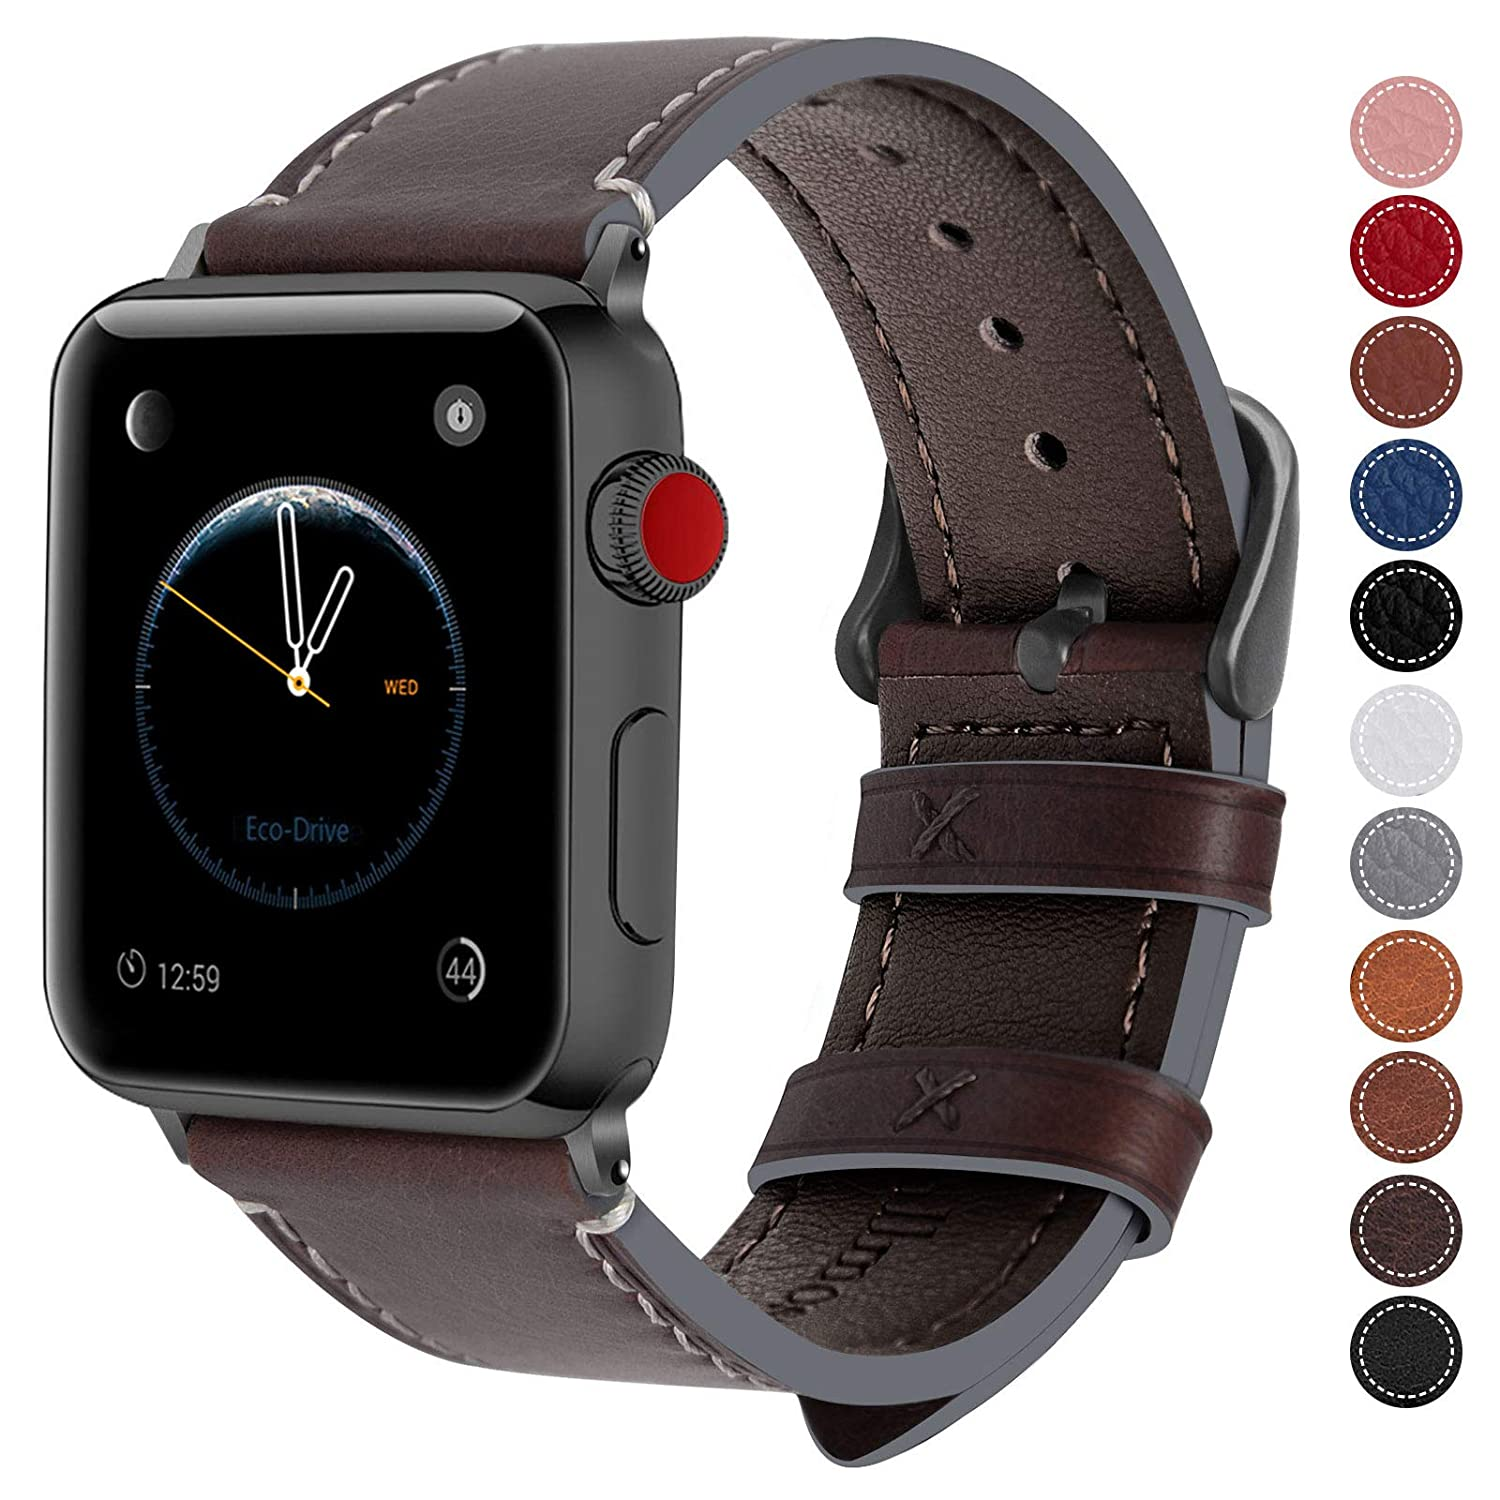 07f6702e8ba Amazon.com  Fullmosa Compatible Apple Watch Band 38mm 40mm 42mm 44mm  Genuine Leather iWatch Bands